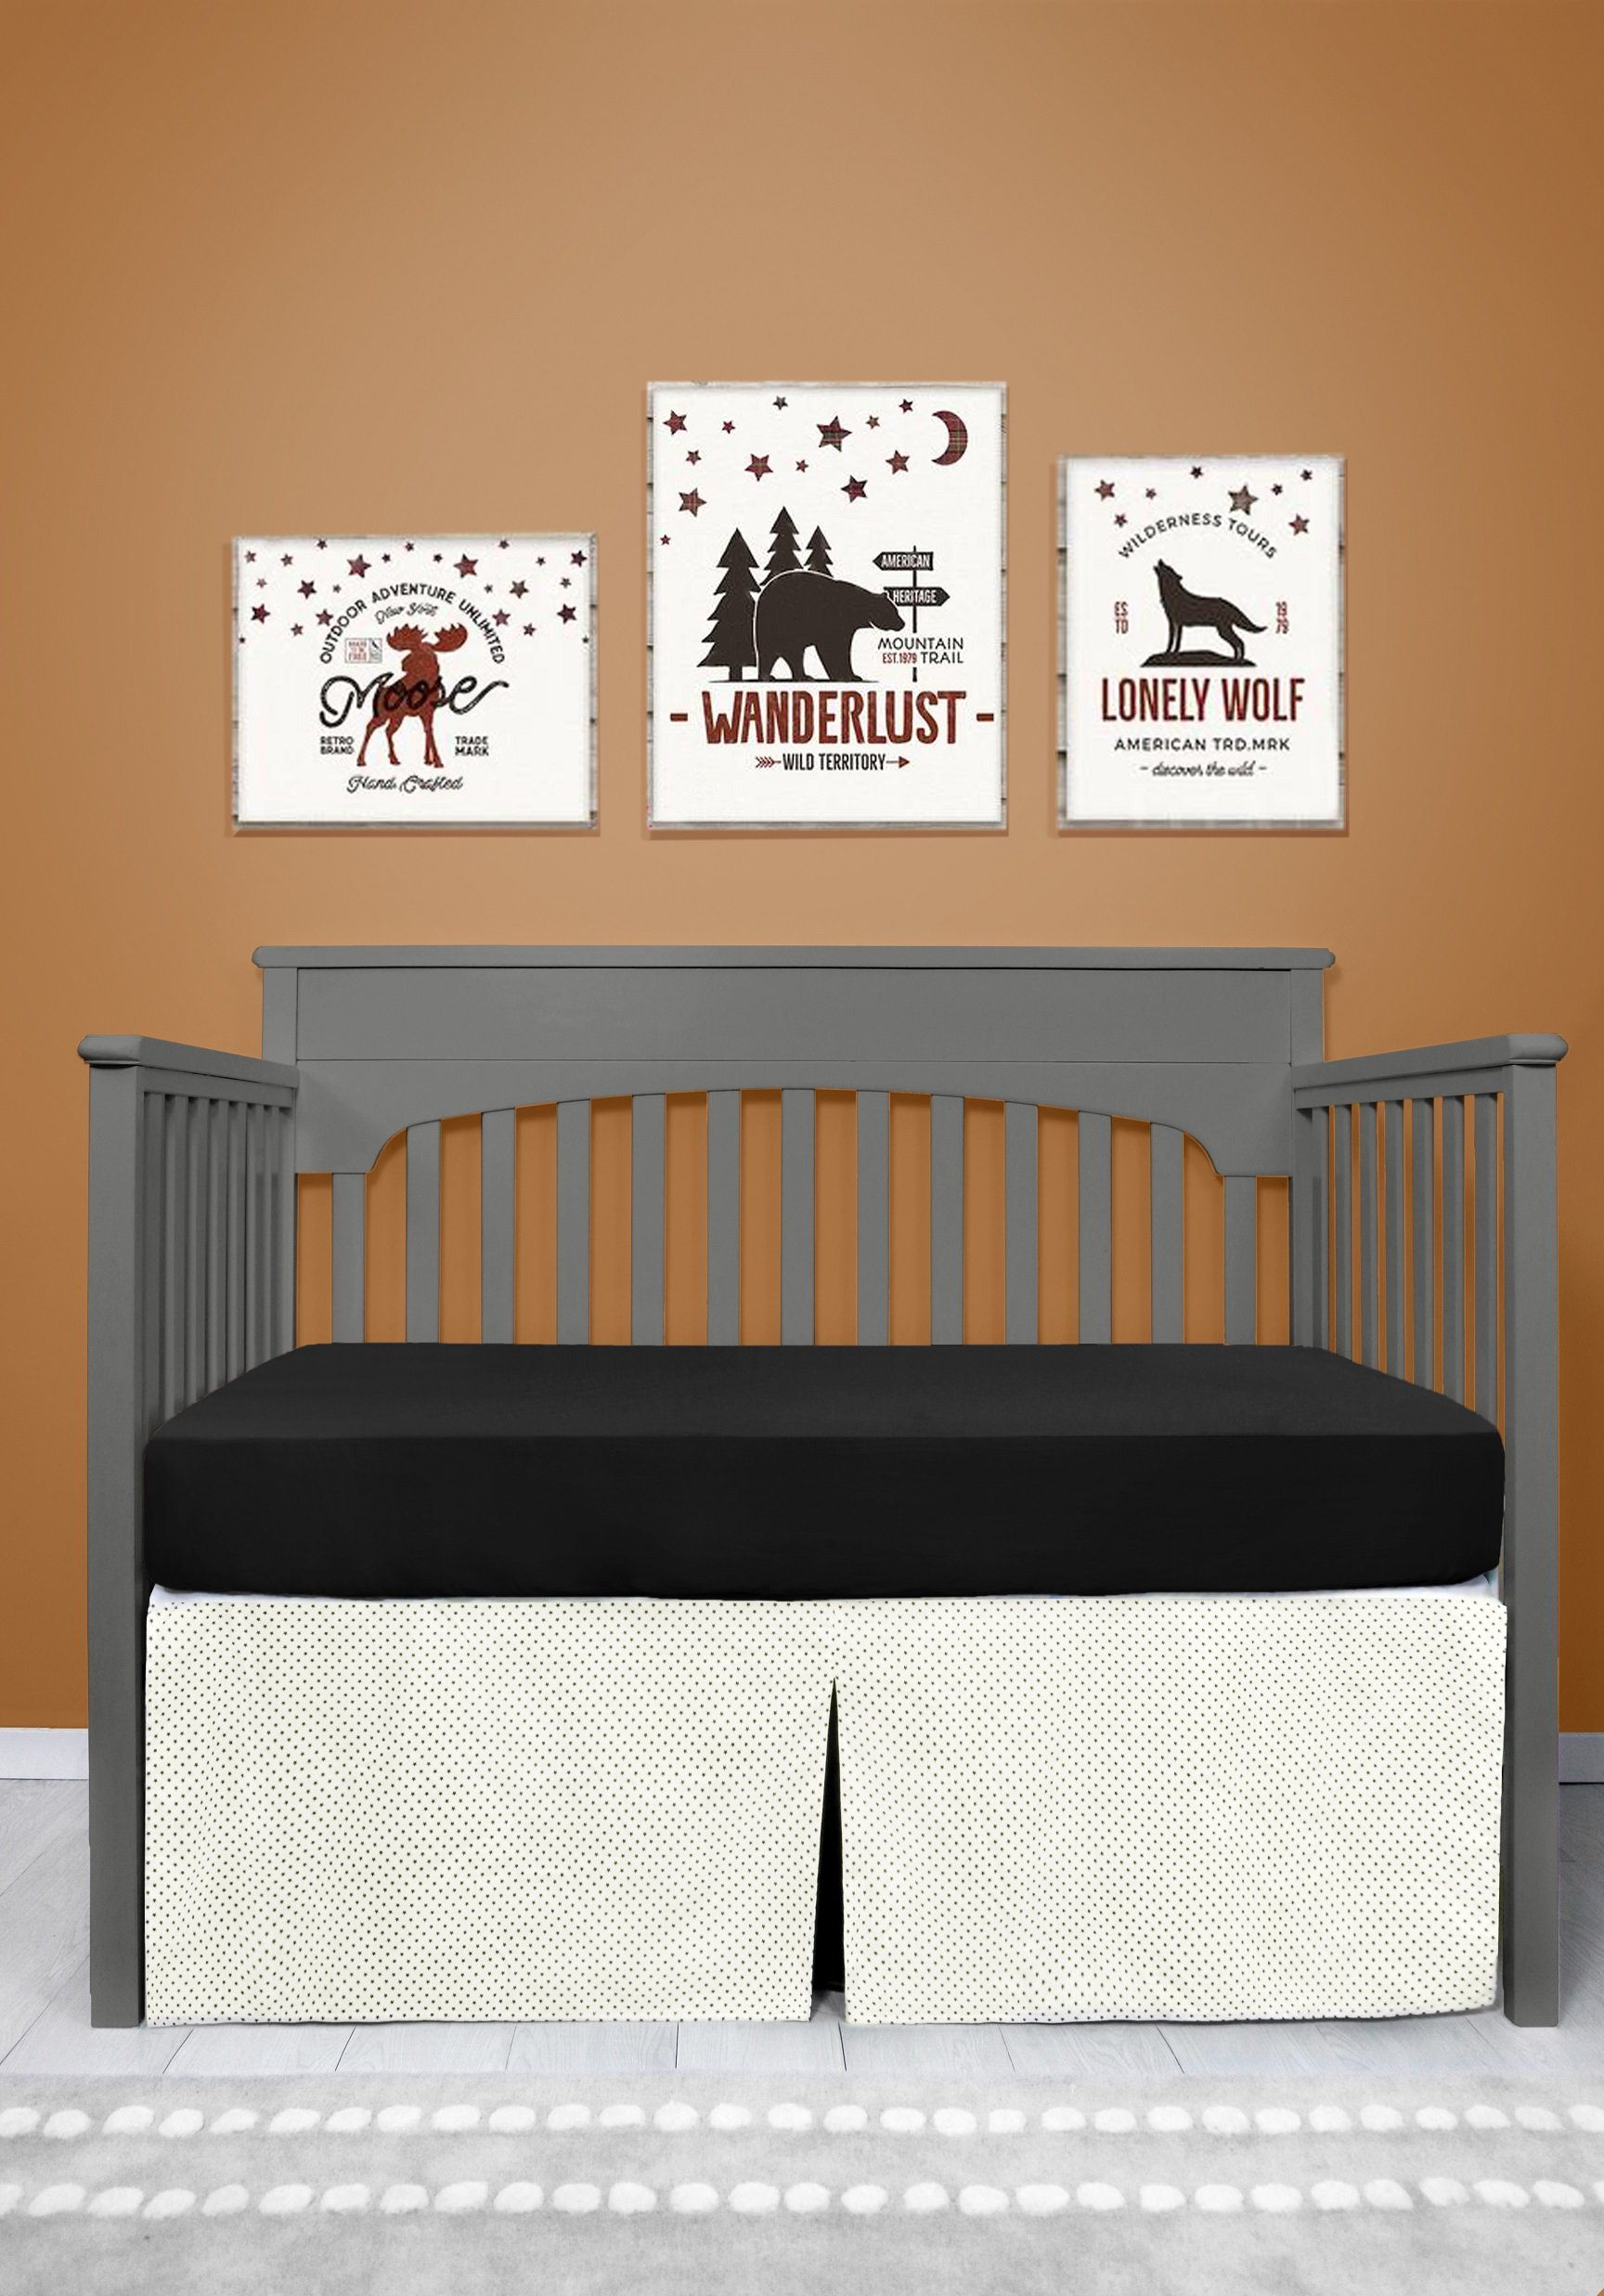 Sugar Q Purified Cotton Good Quality Cot Bed Skirt for Children Off-White & Black Stars Polka Dots Pattern Pleated Easy Placing (BCS010)